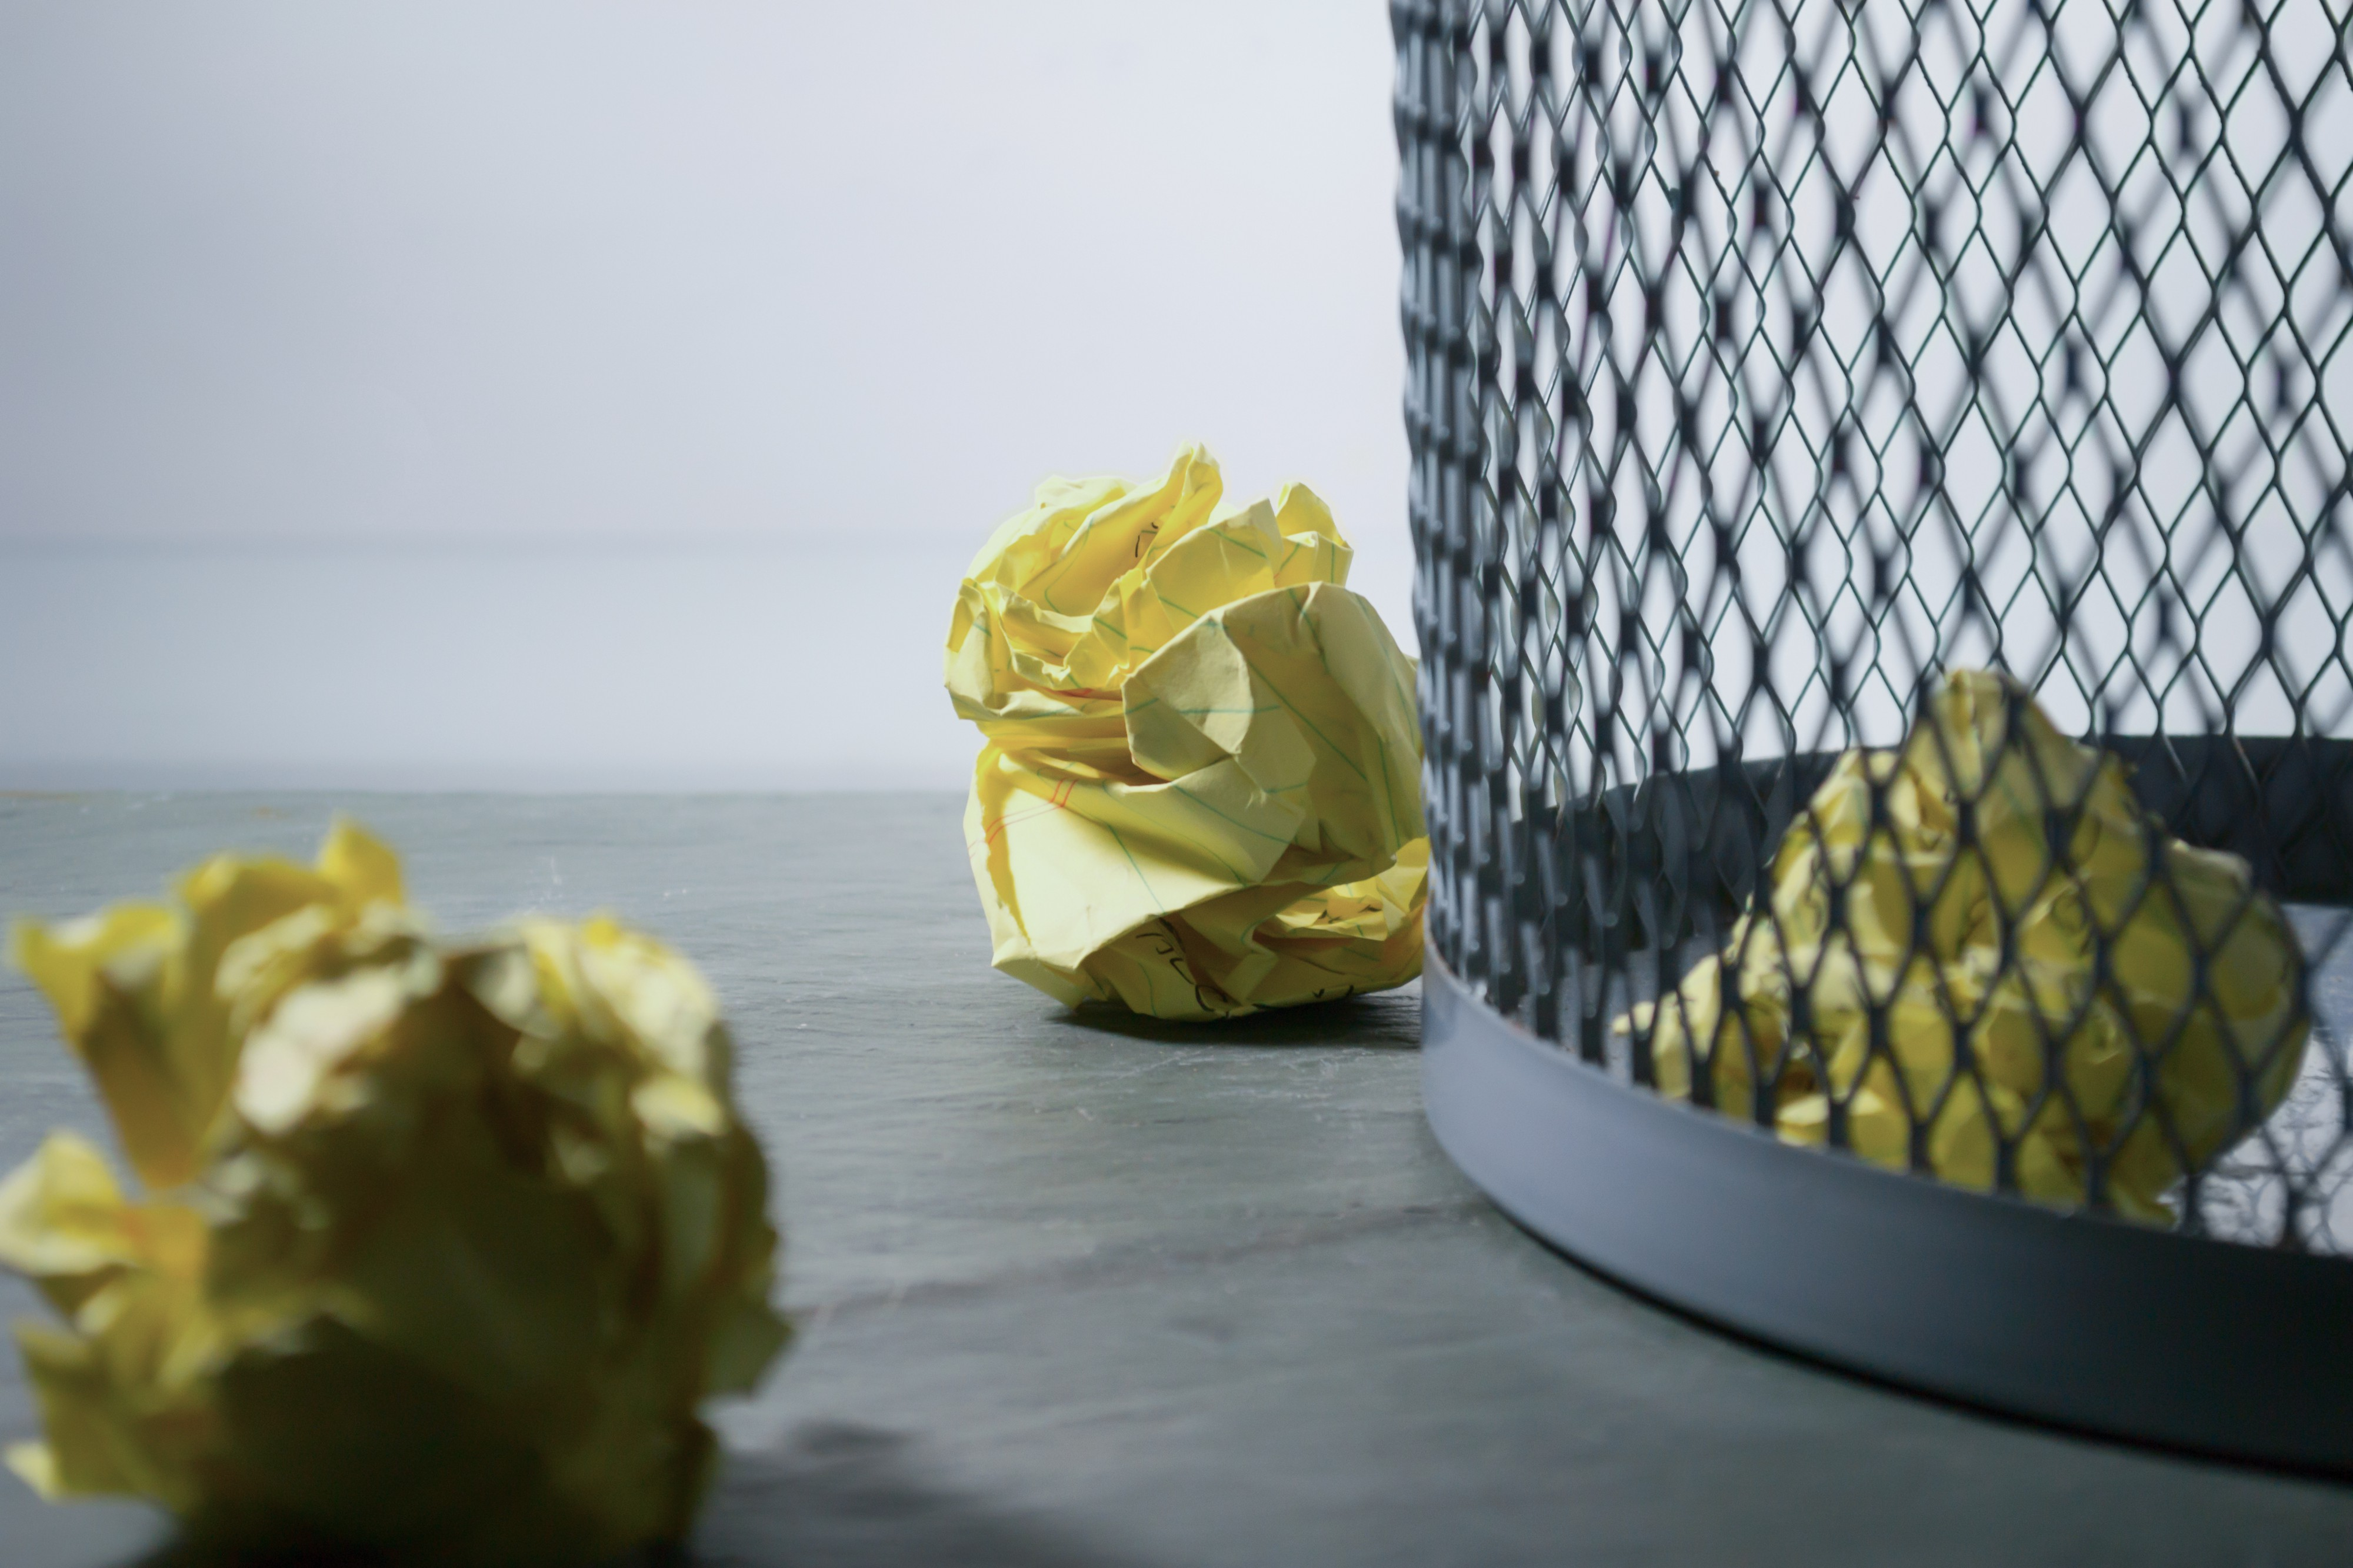 A basket of crumpled papers signifying wasted & failed ideas.